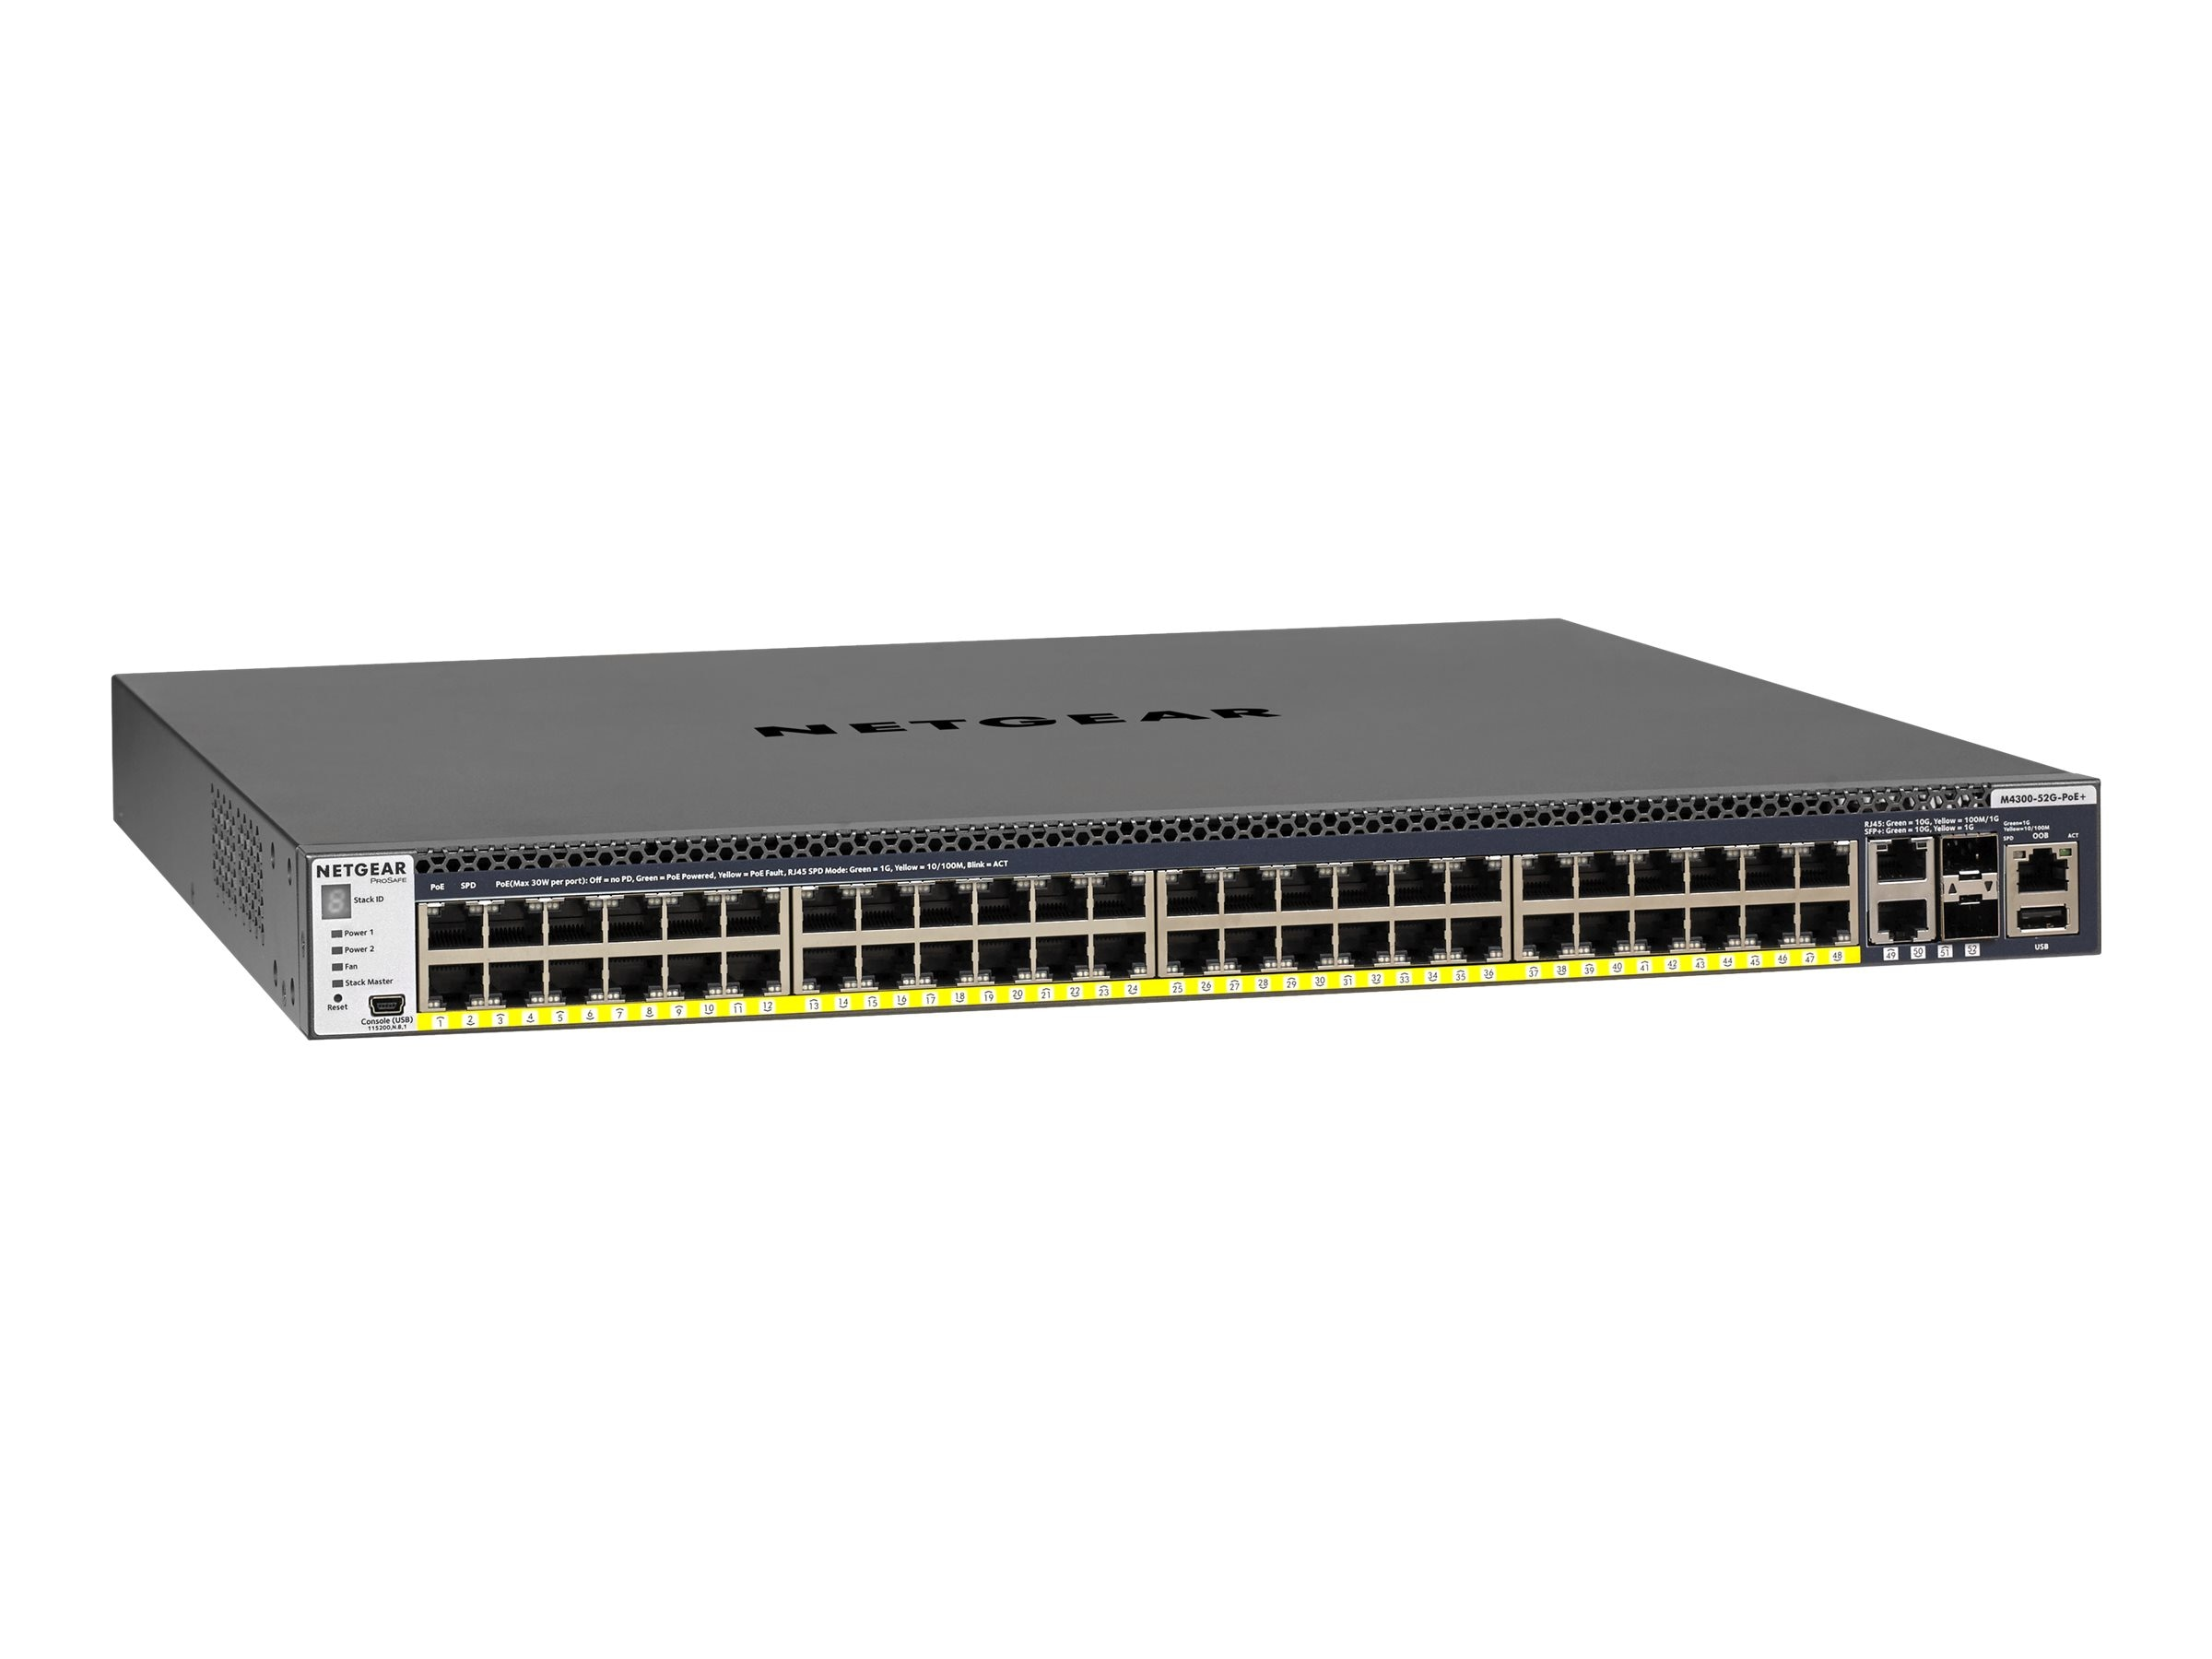 Netgear M4300-52G-PoE+ 48-Port 10Gb PoE+Managed Switch, GSM4352PB-100NES, 31435841, Network Switches